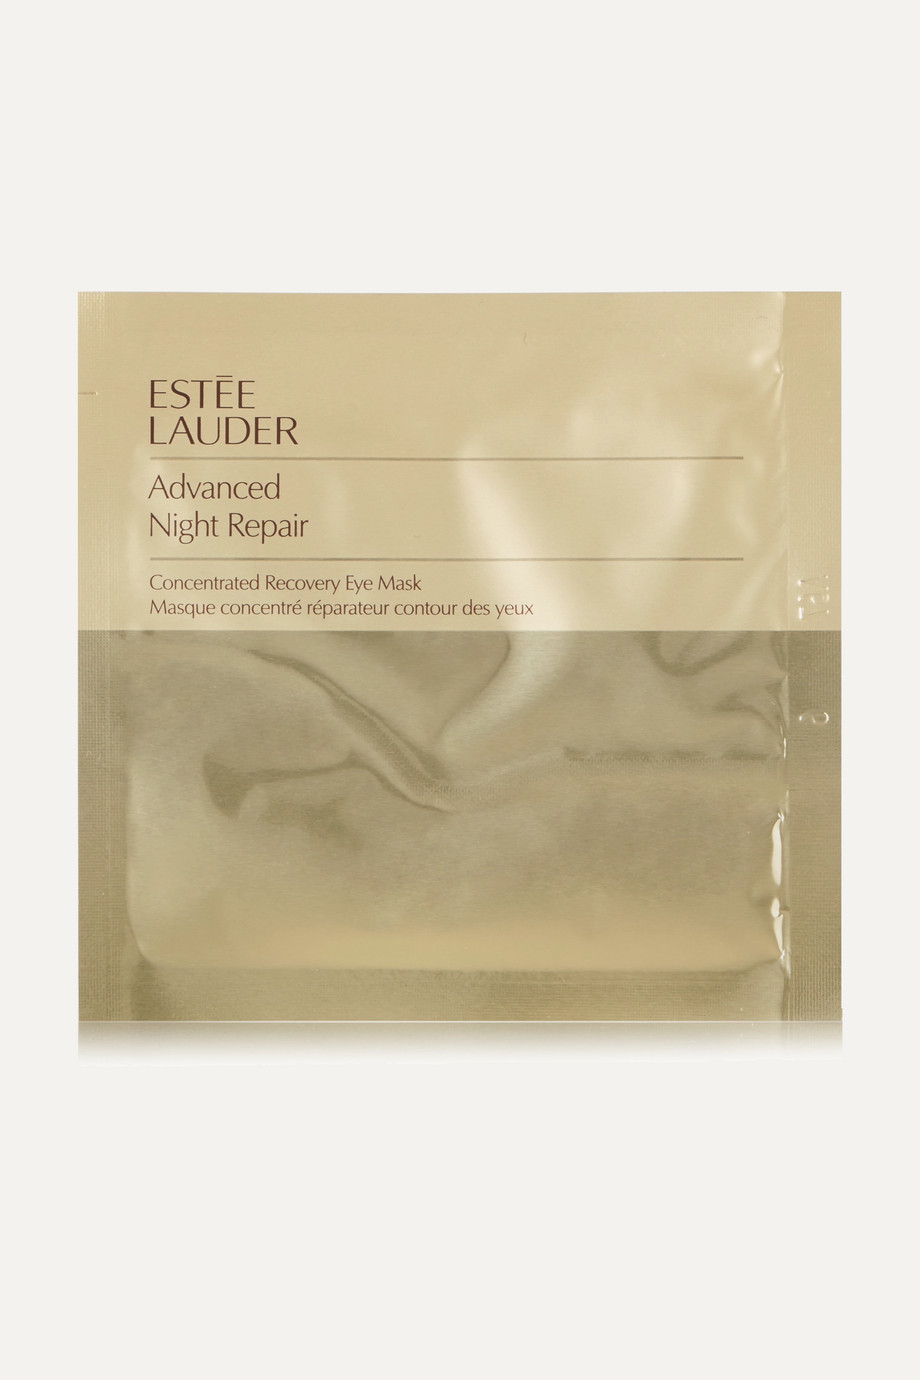 Estée Lauder Advanced Night Repair Concentrated Recovery Eye Mask x 8